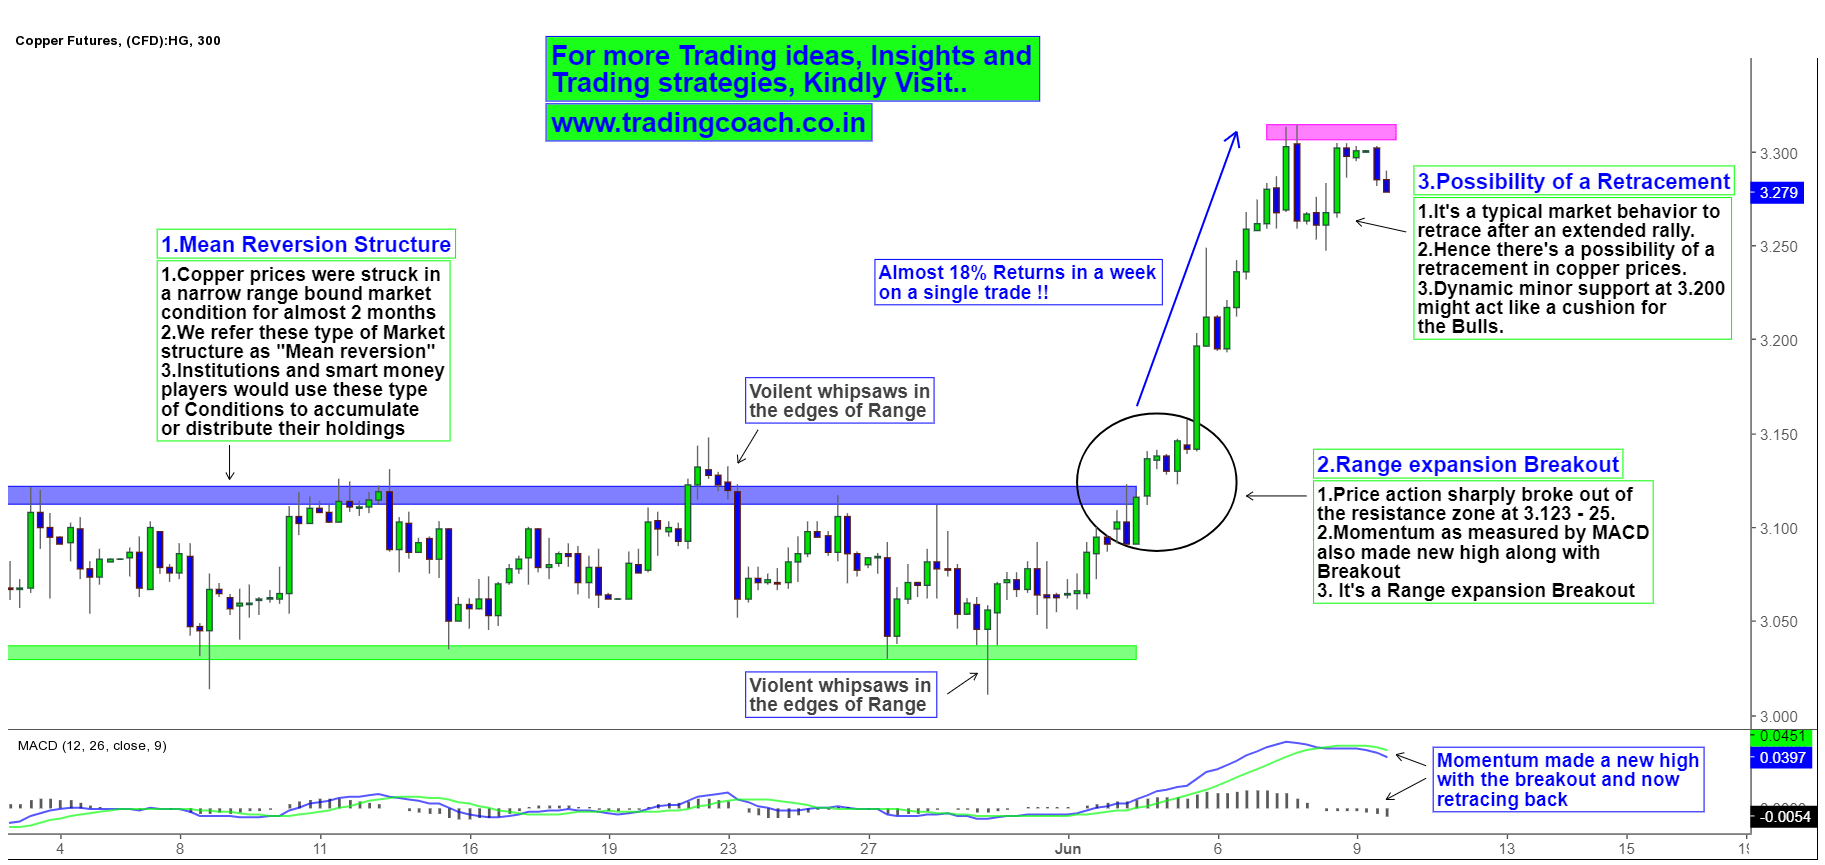 Price Action shows possibility of Retracement due to breakout